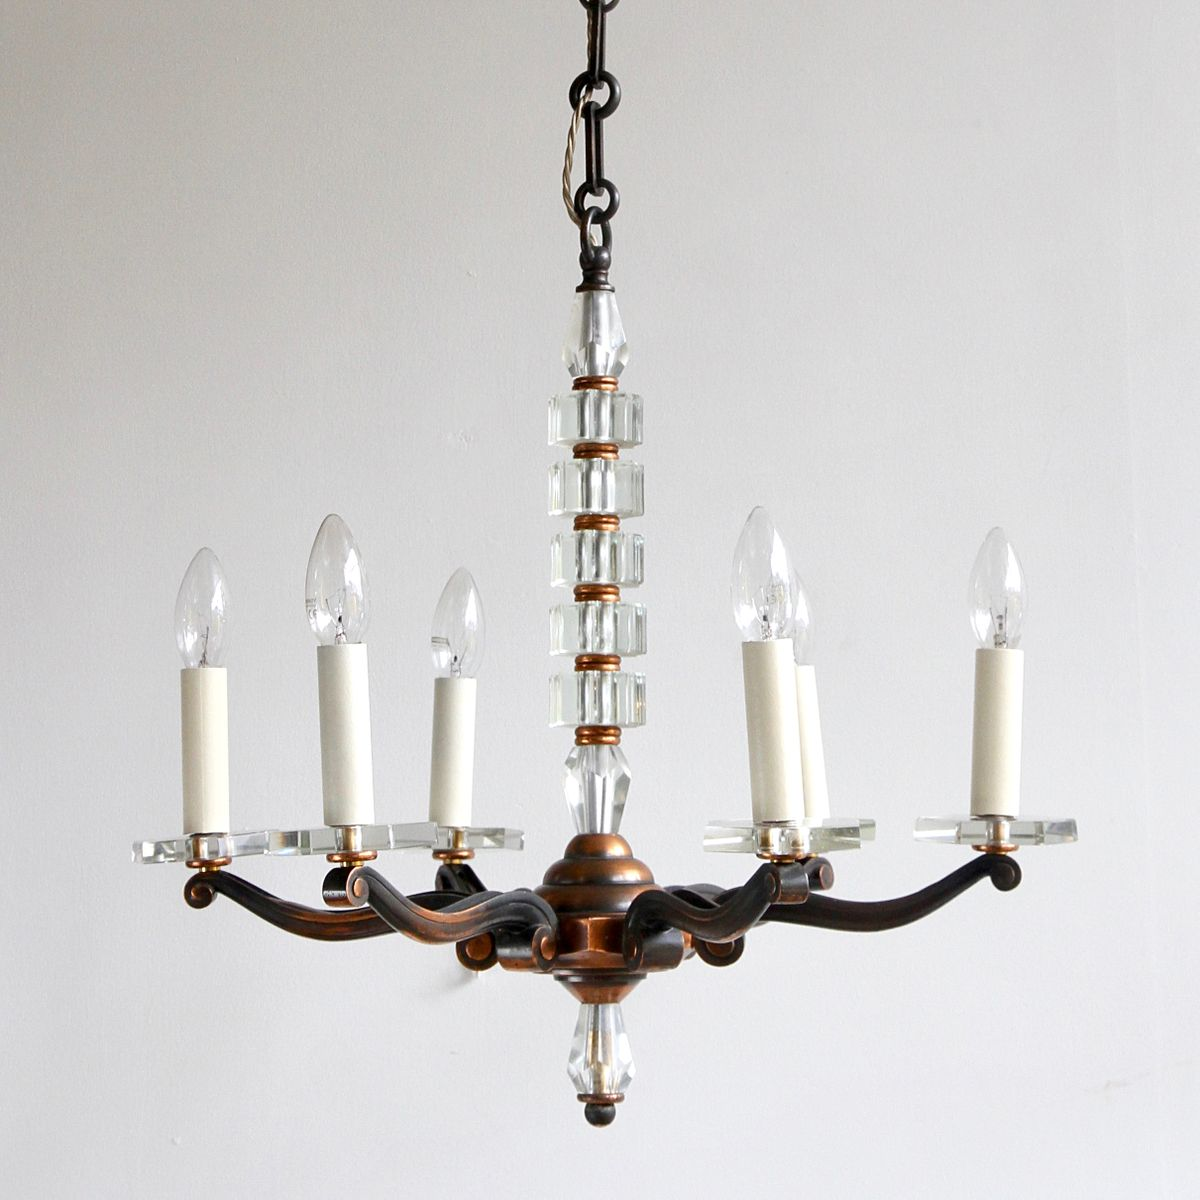 Copper and crystal chandelier 1930s for sale at pamono copper and crystal chandelier 1930s mozeypictures